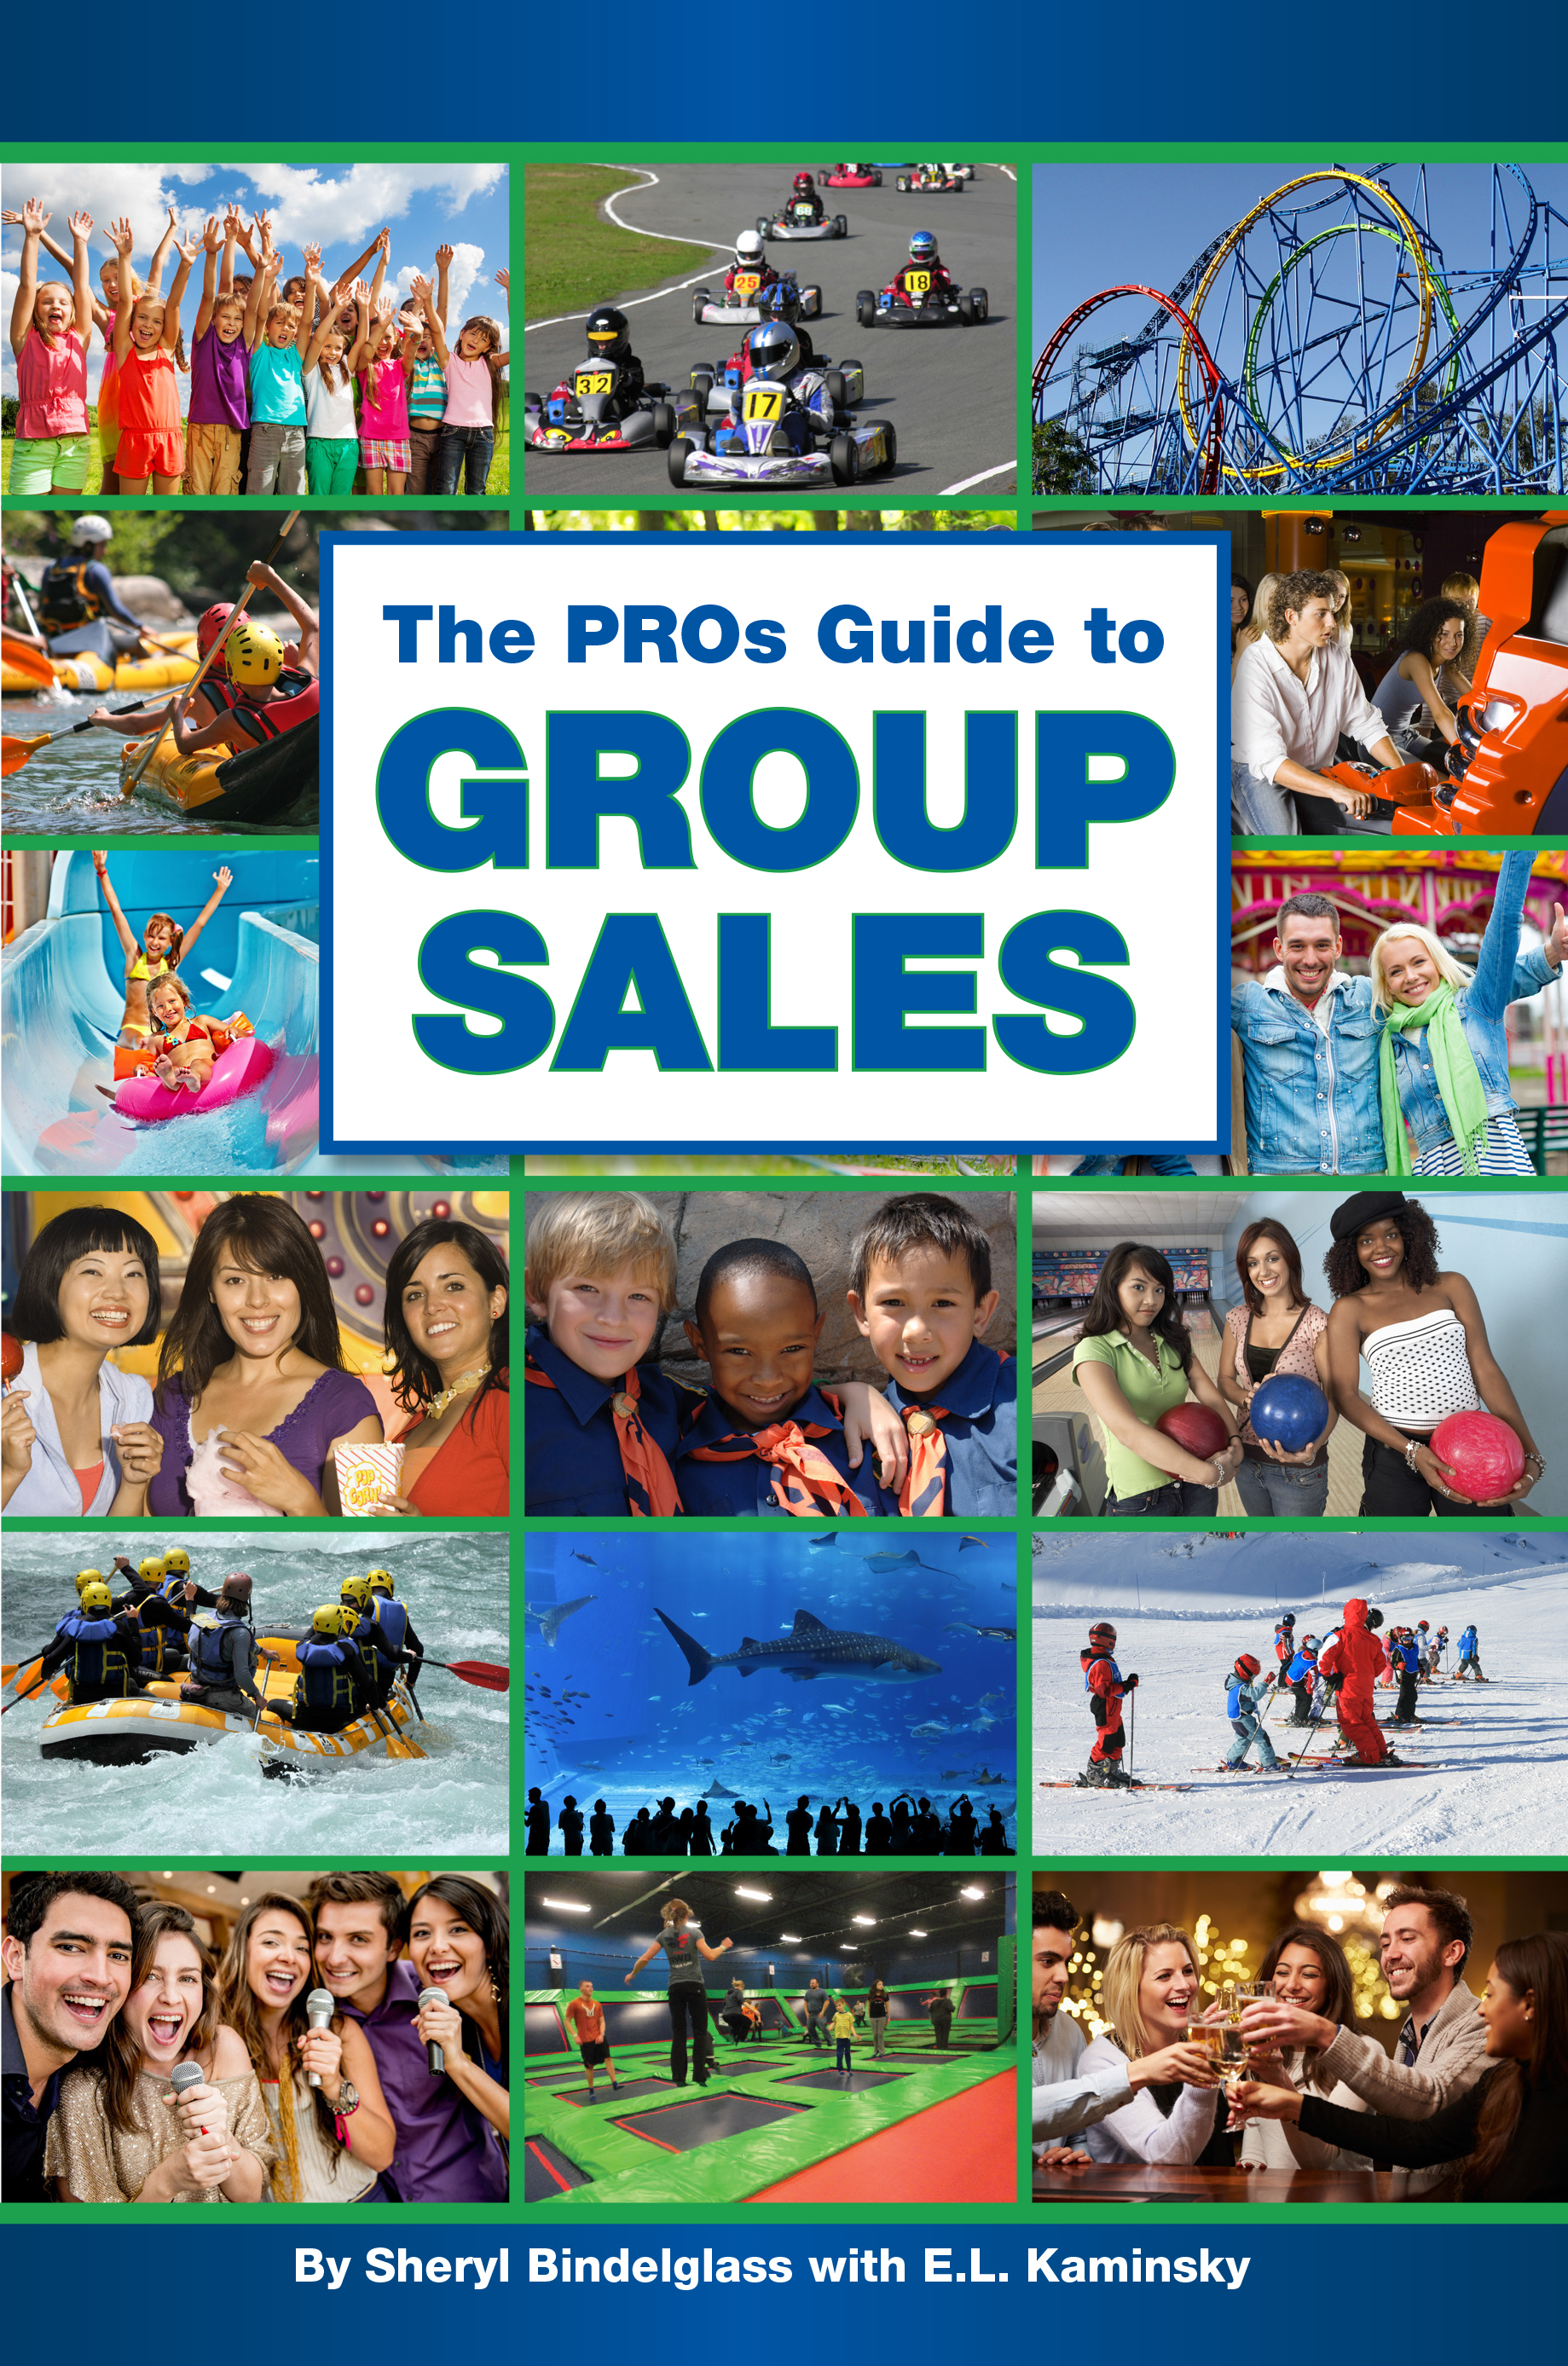 The PROs Guide to Group Sales